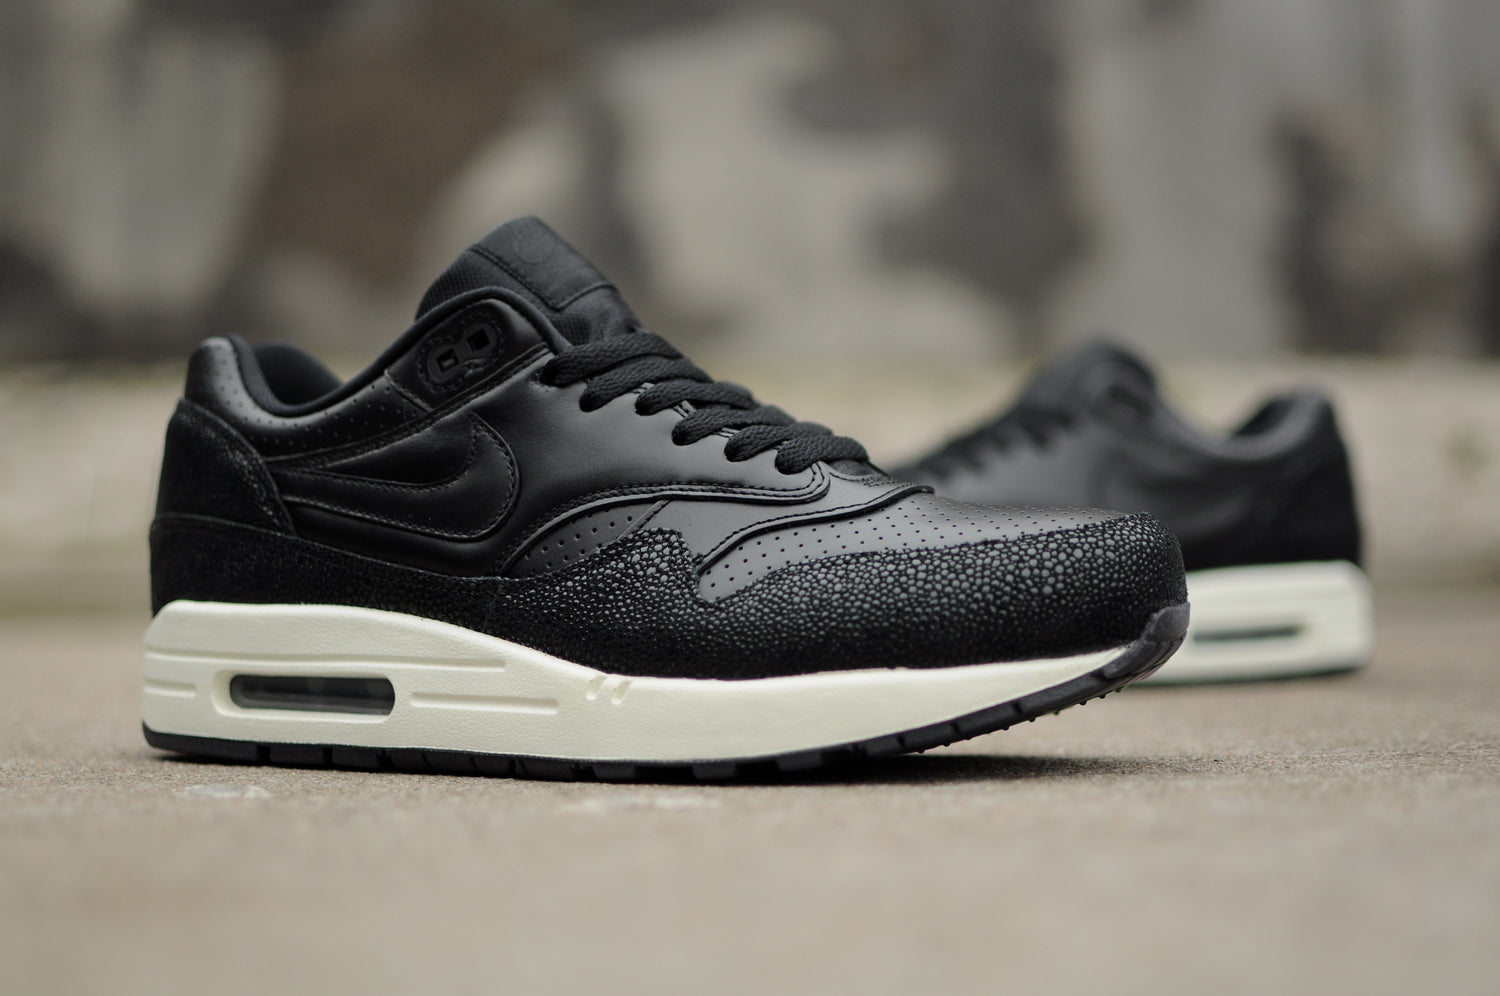 "Nike Air Max 1 Leather PA ""Stingray</p>                     </div> 		  <!--bof Product URL --> 										<!--eof Product URL --> 					<!--bof Quantity Discounts table --> 											<!--eof Quantity Discounts table --> 				</div> 				                       			</dd> 						<dt class="